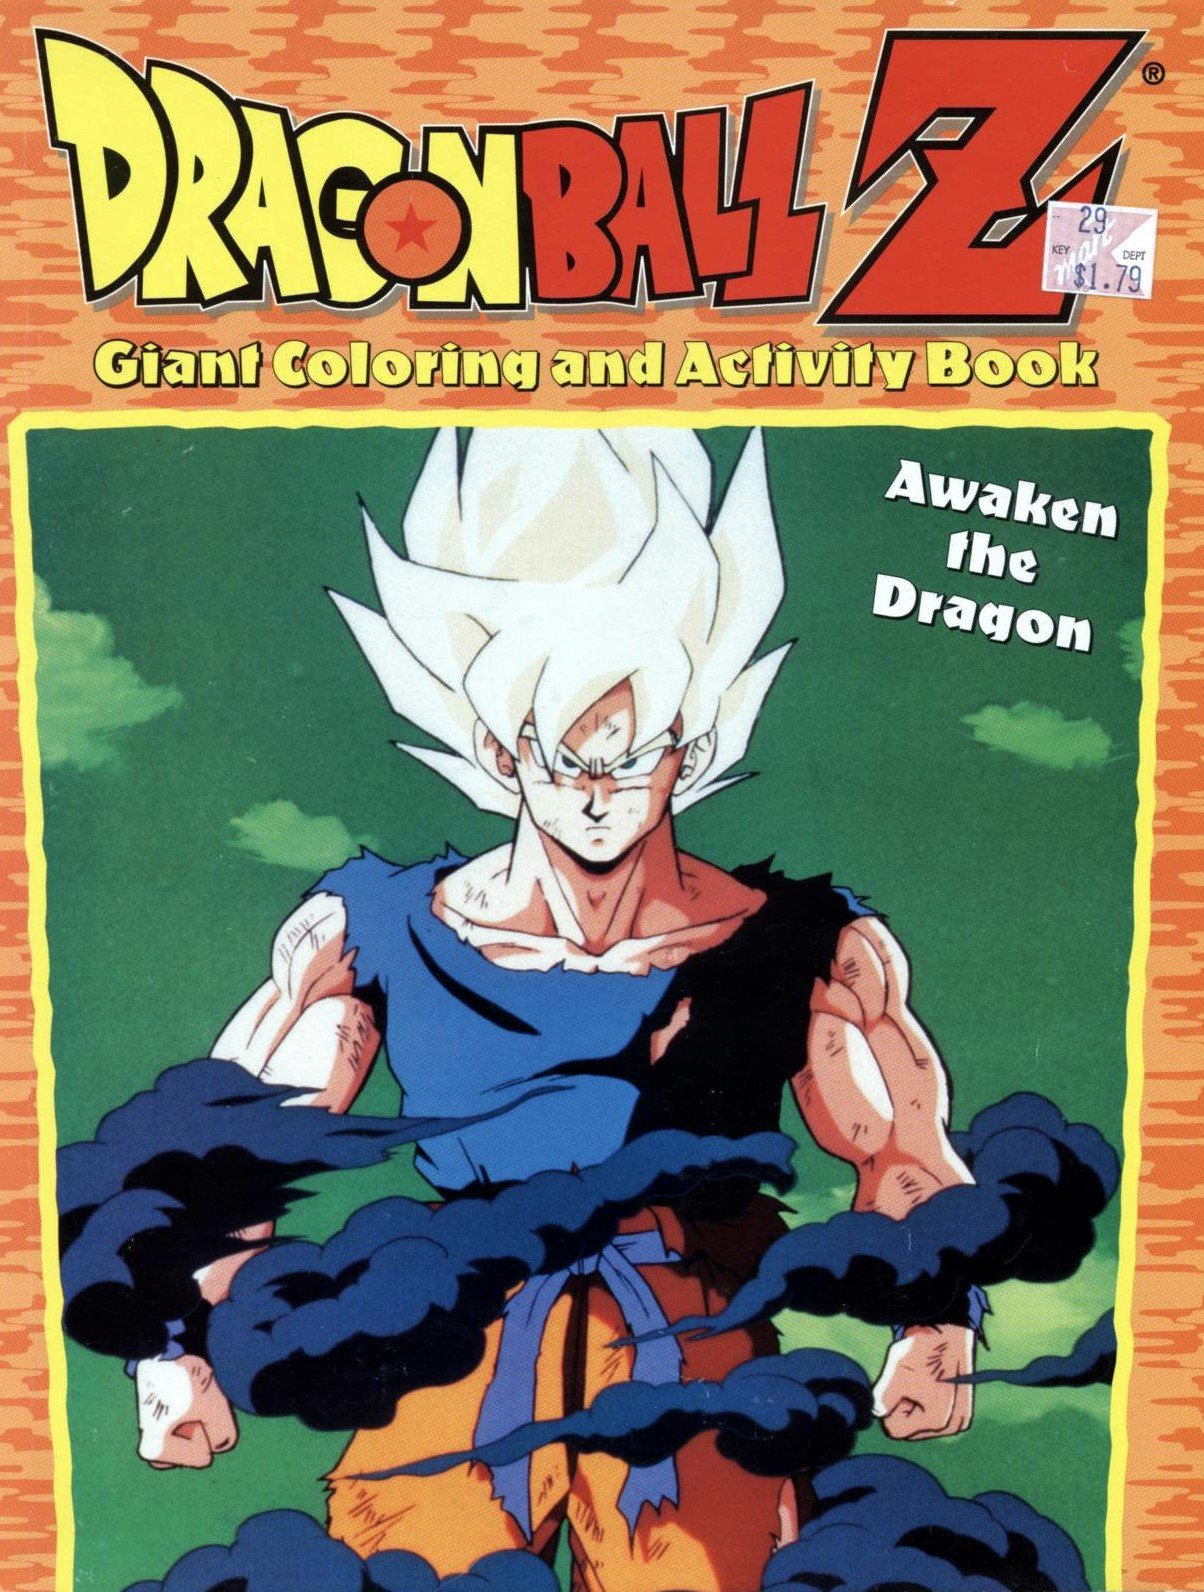 awaken the dragon dragon ball z giant coloring and activity book dragon ball z toei animation 9780766605398 amazoncom books